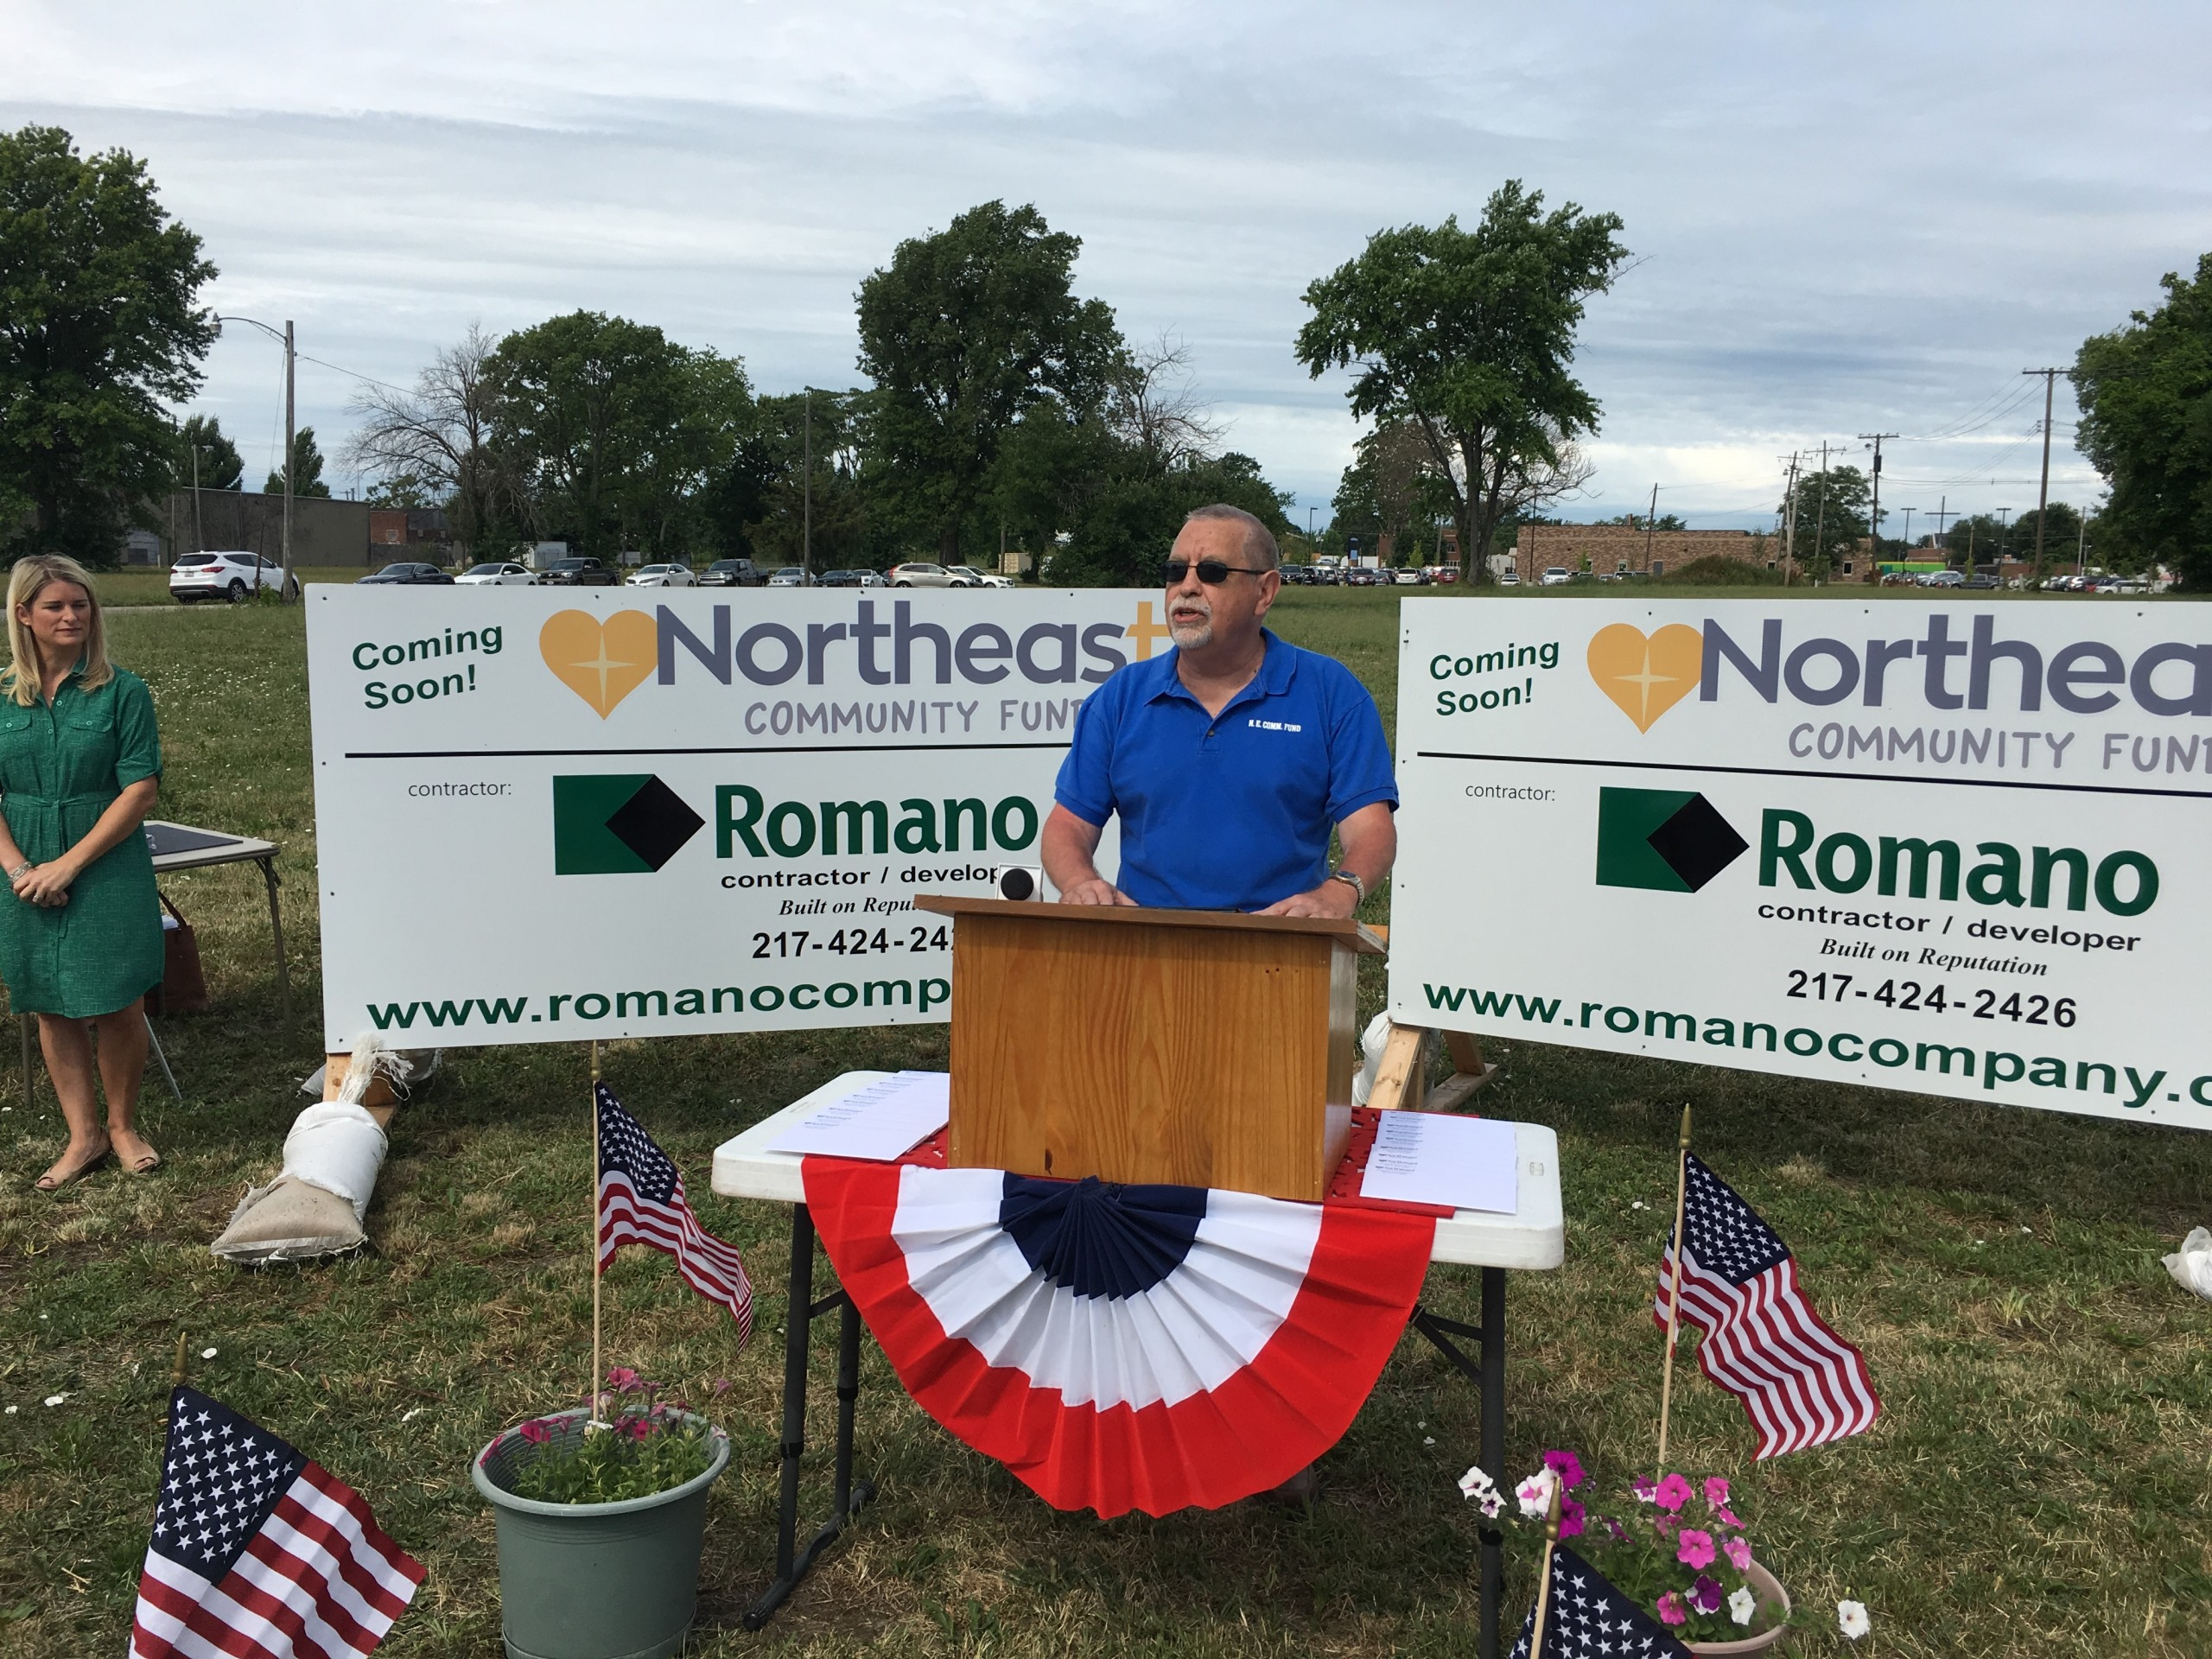 Northeast Community Fund announces a Capital Campaign and New Campus